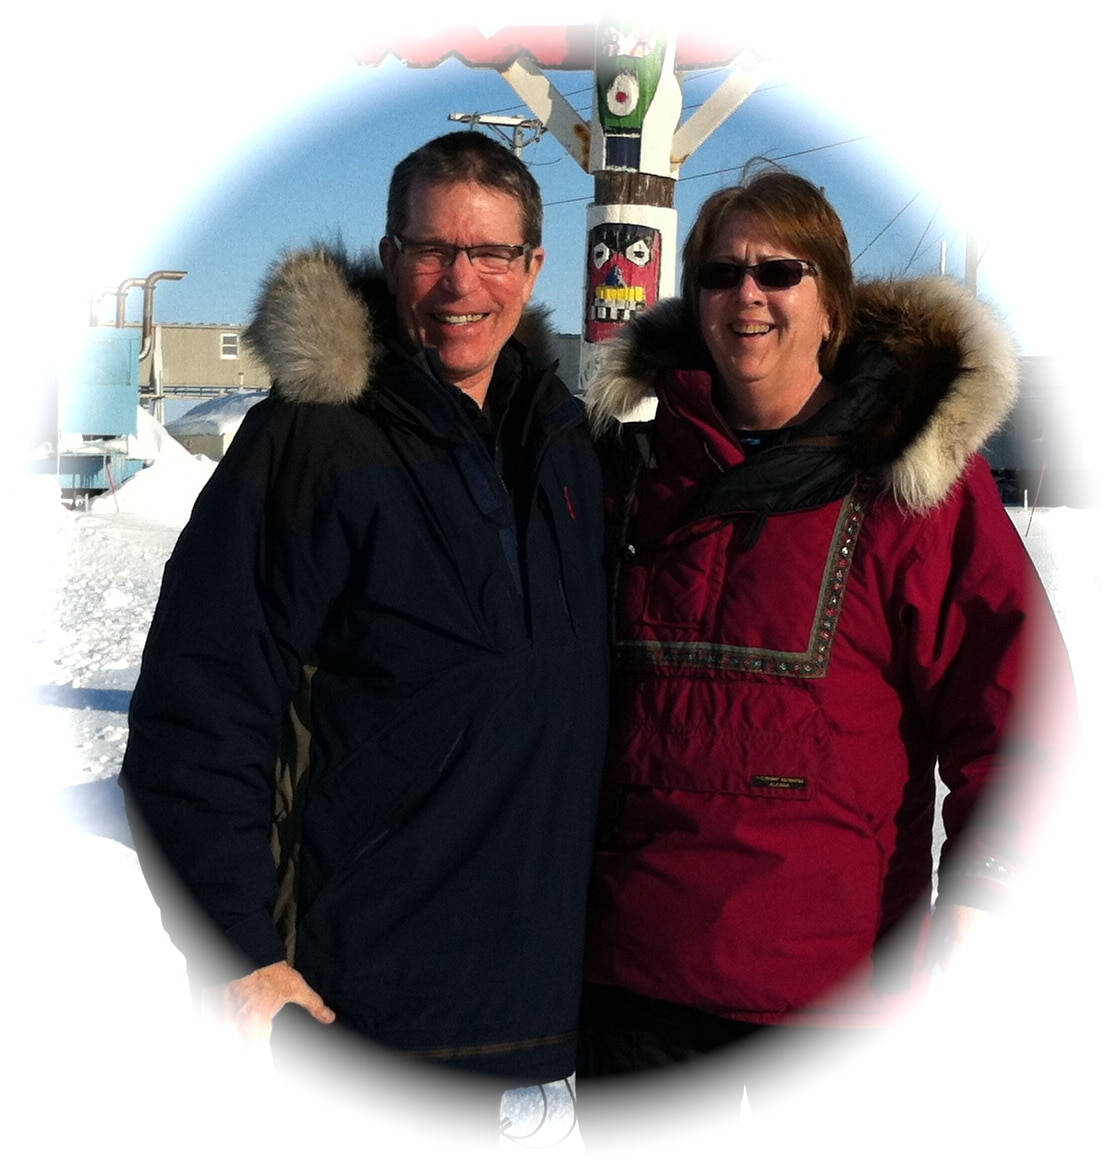 Mike & Cathy from Wasilla